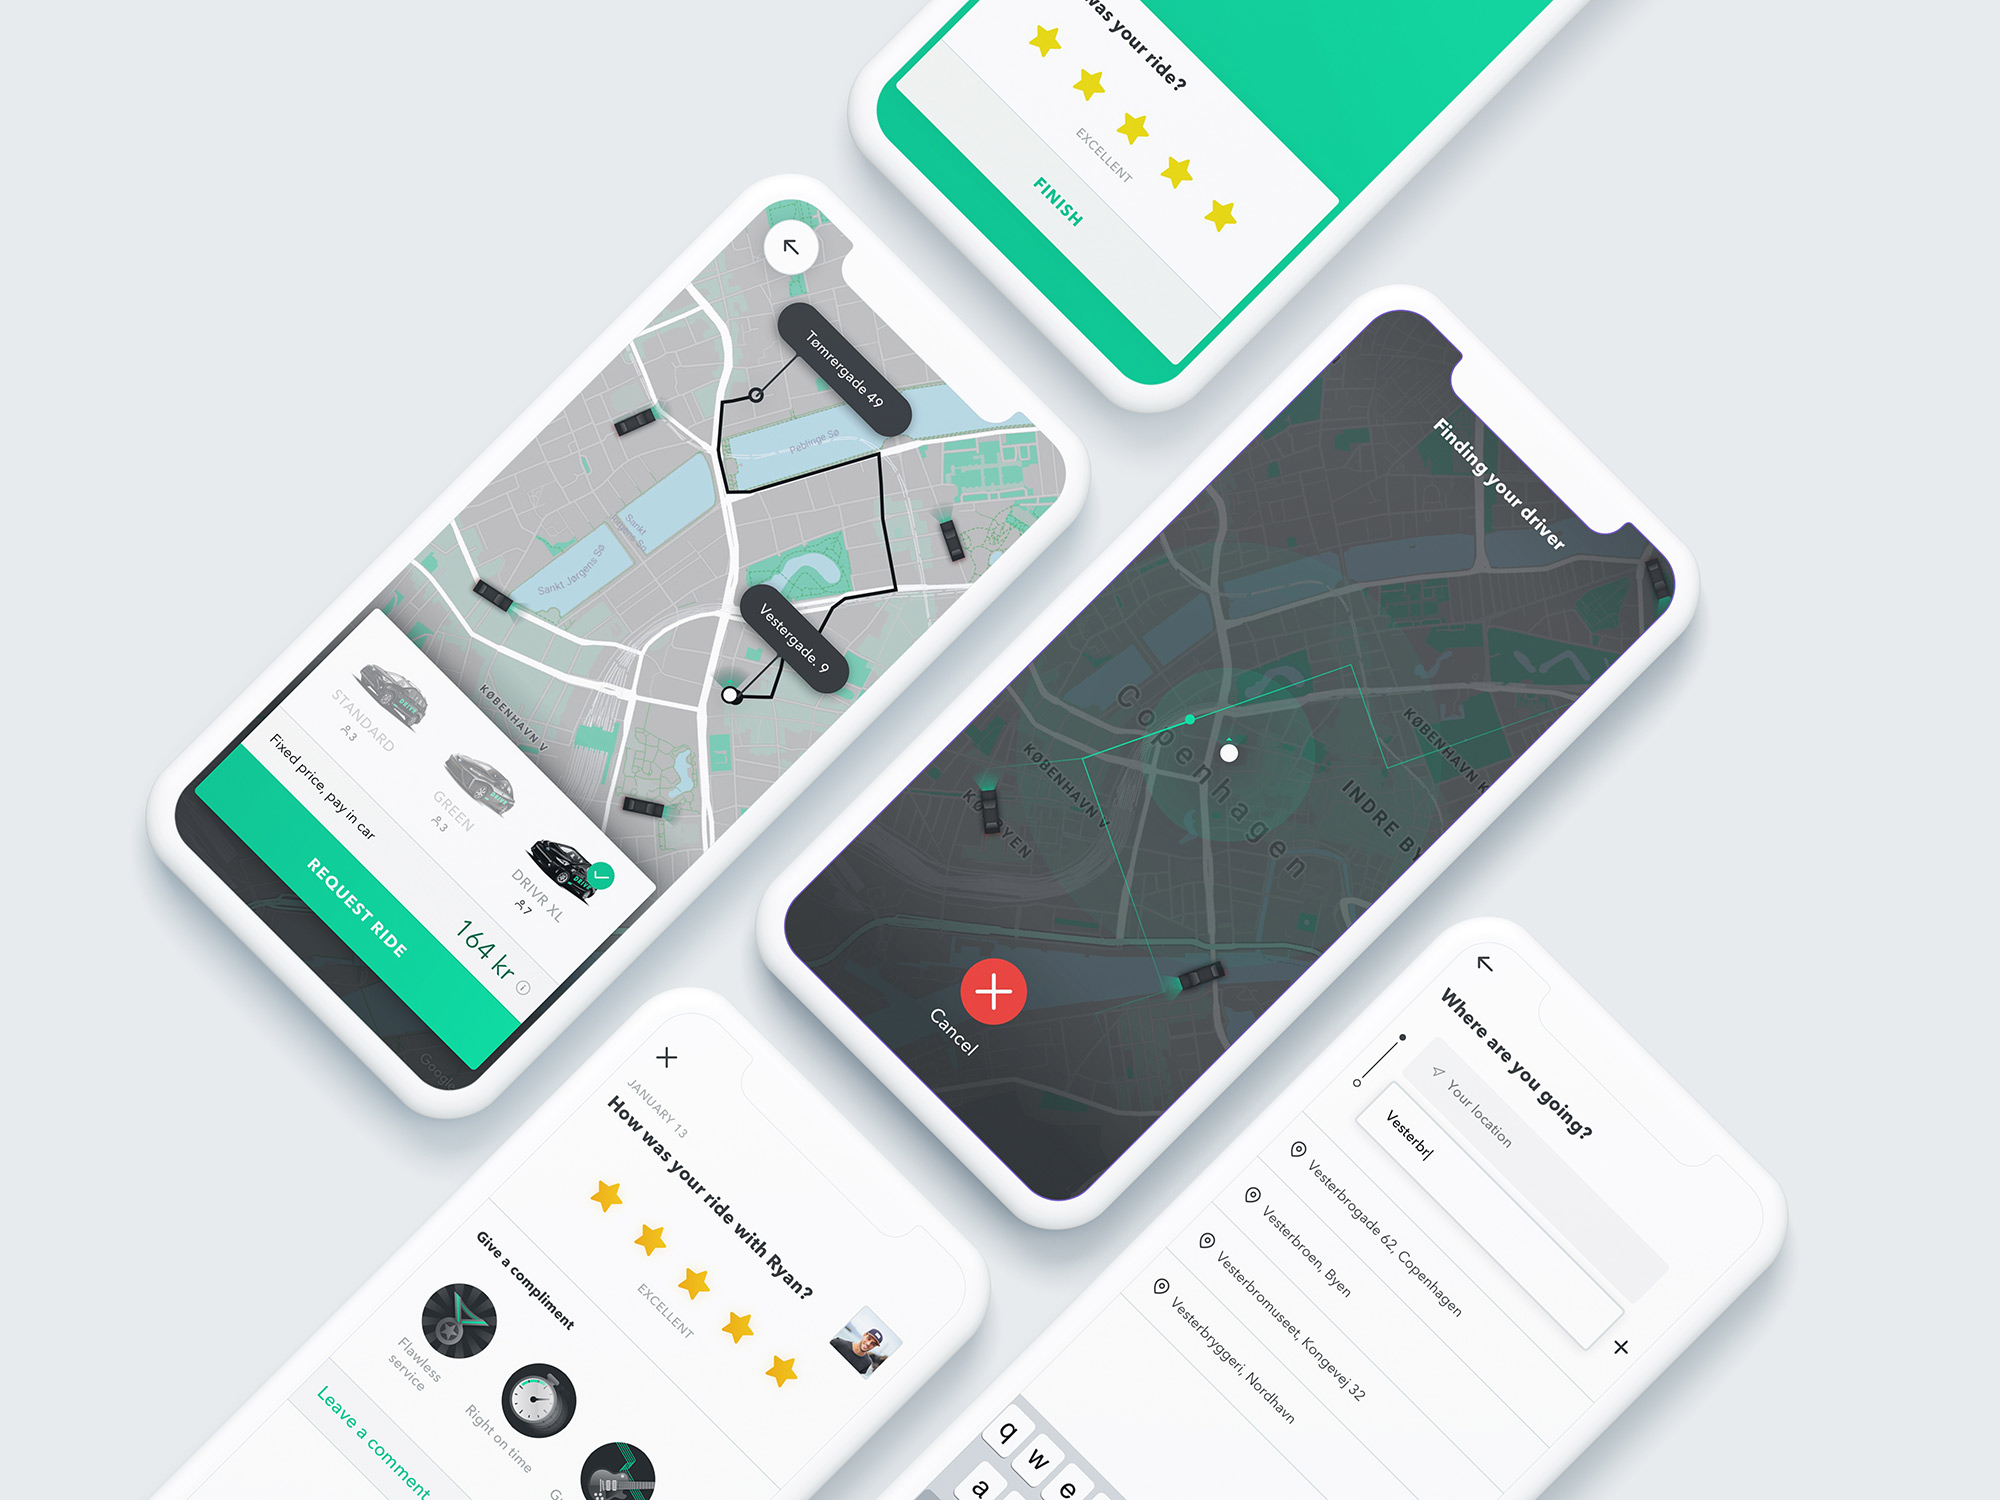 DRIVR app screens